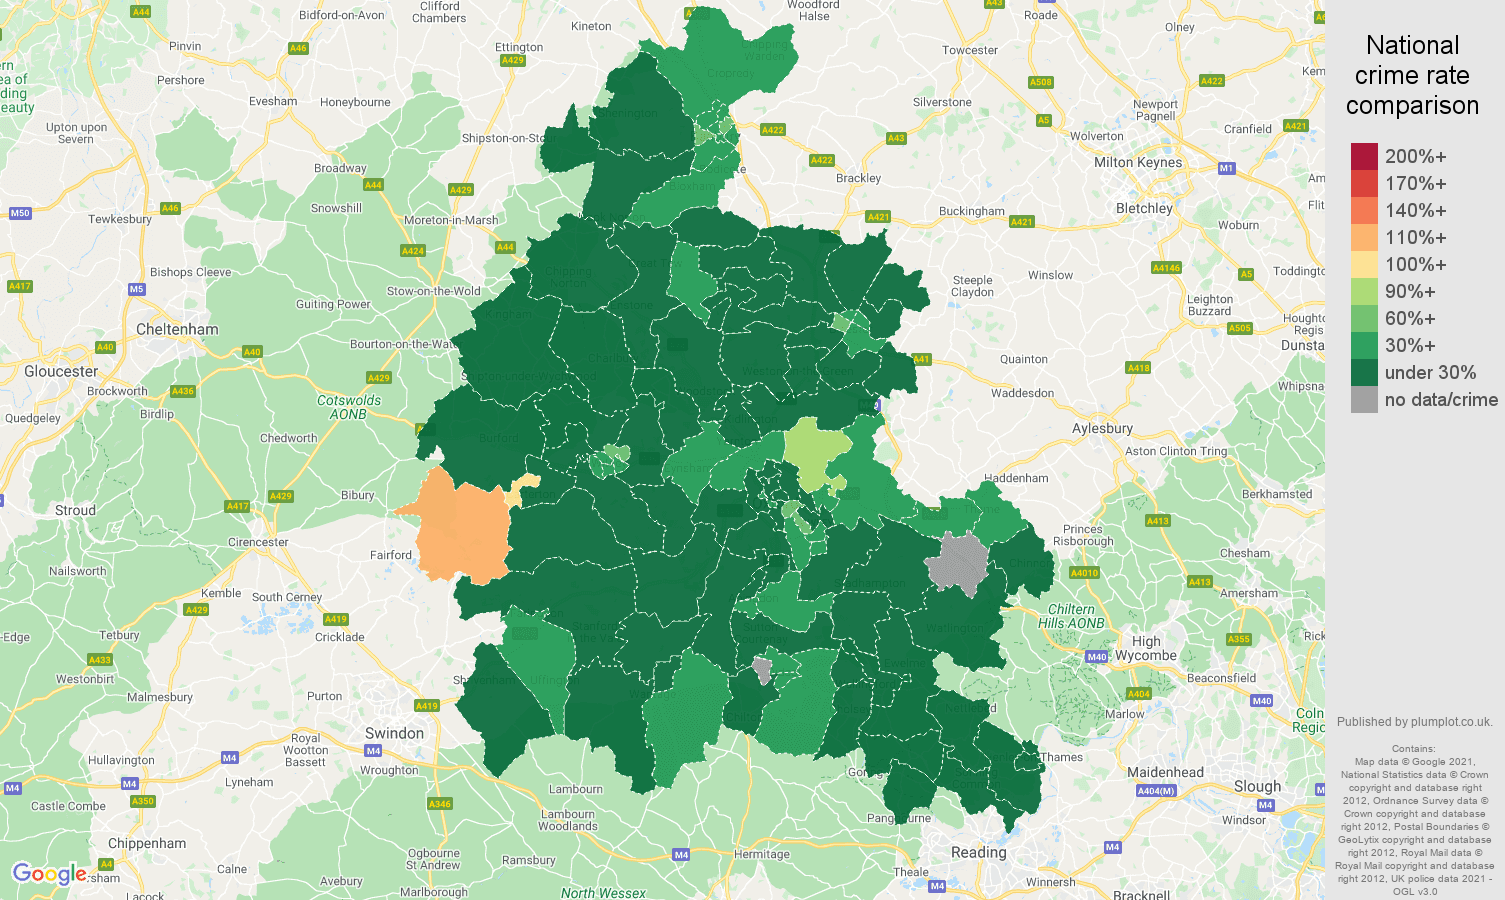 Oxfordshire antisocial behaviour crime rate comparison map